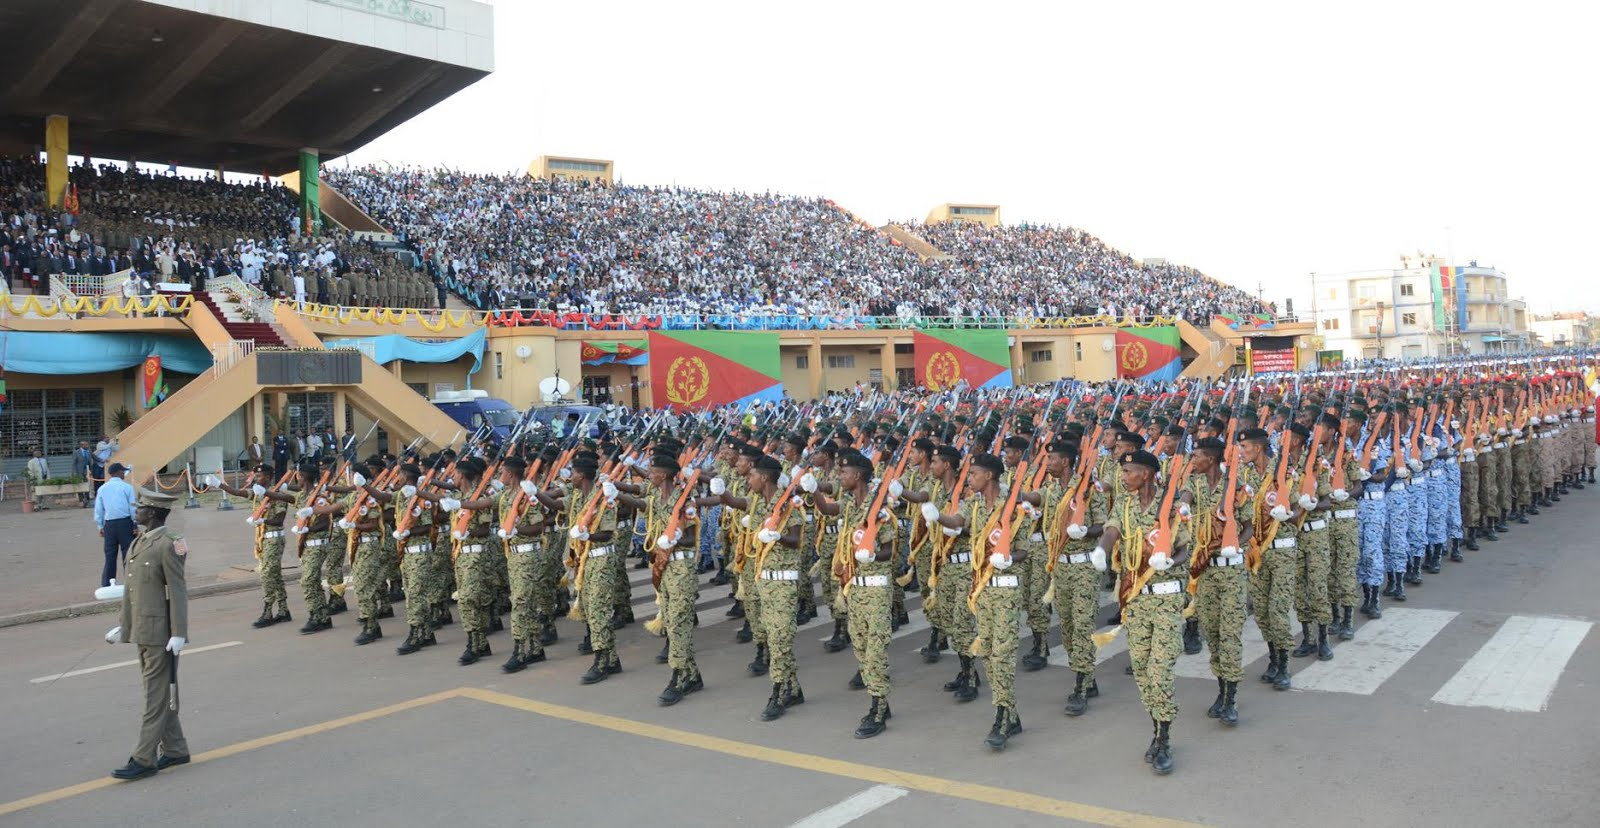 <&quot;The wall that the Ethiopians had carefully erected (to isolate Eritrea) has frankly crumbled.&quot;